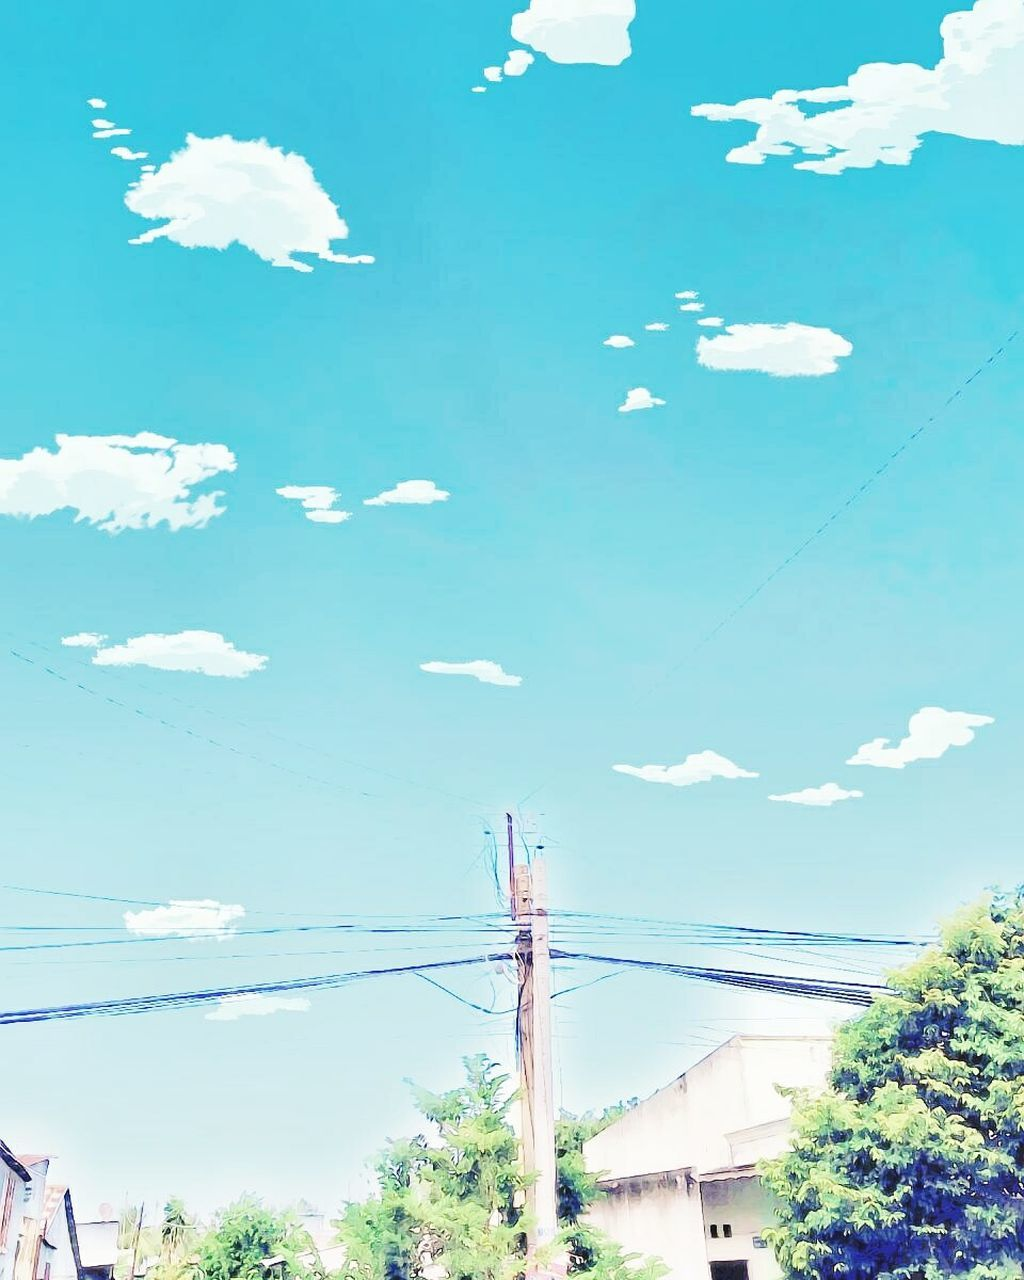 sky, day, connection, cable, cloud - sky, no people, tree, outdoors, low angle view, built structure, architecture, building exterior, nature